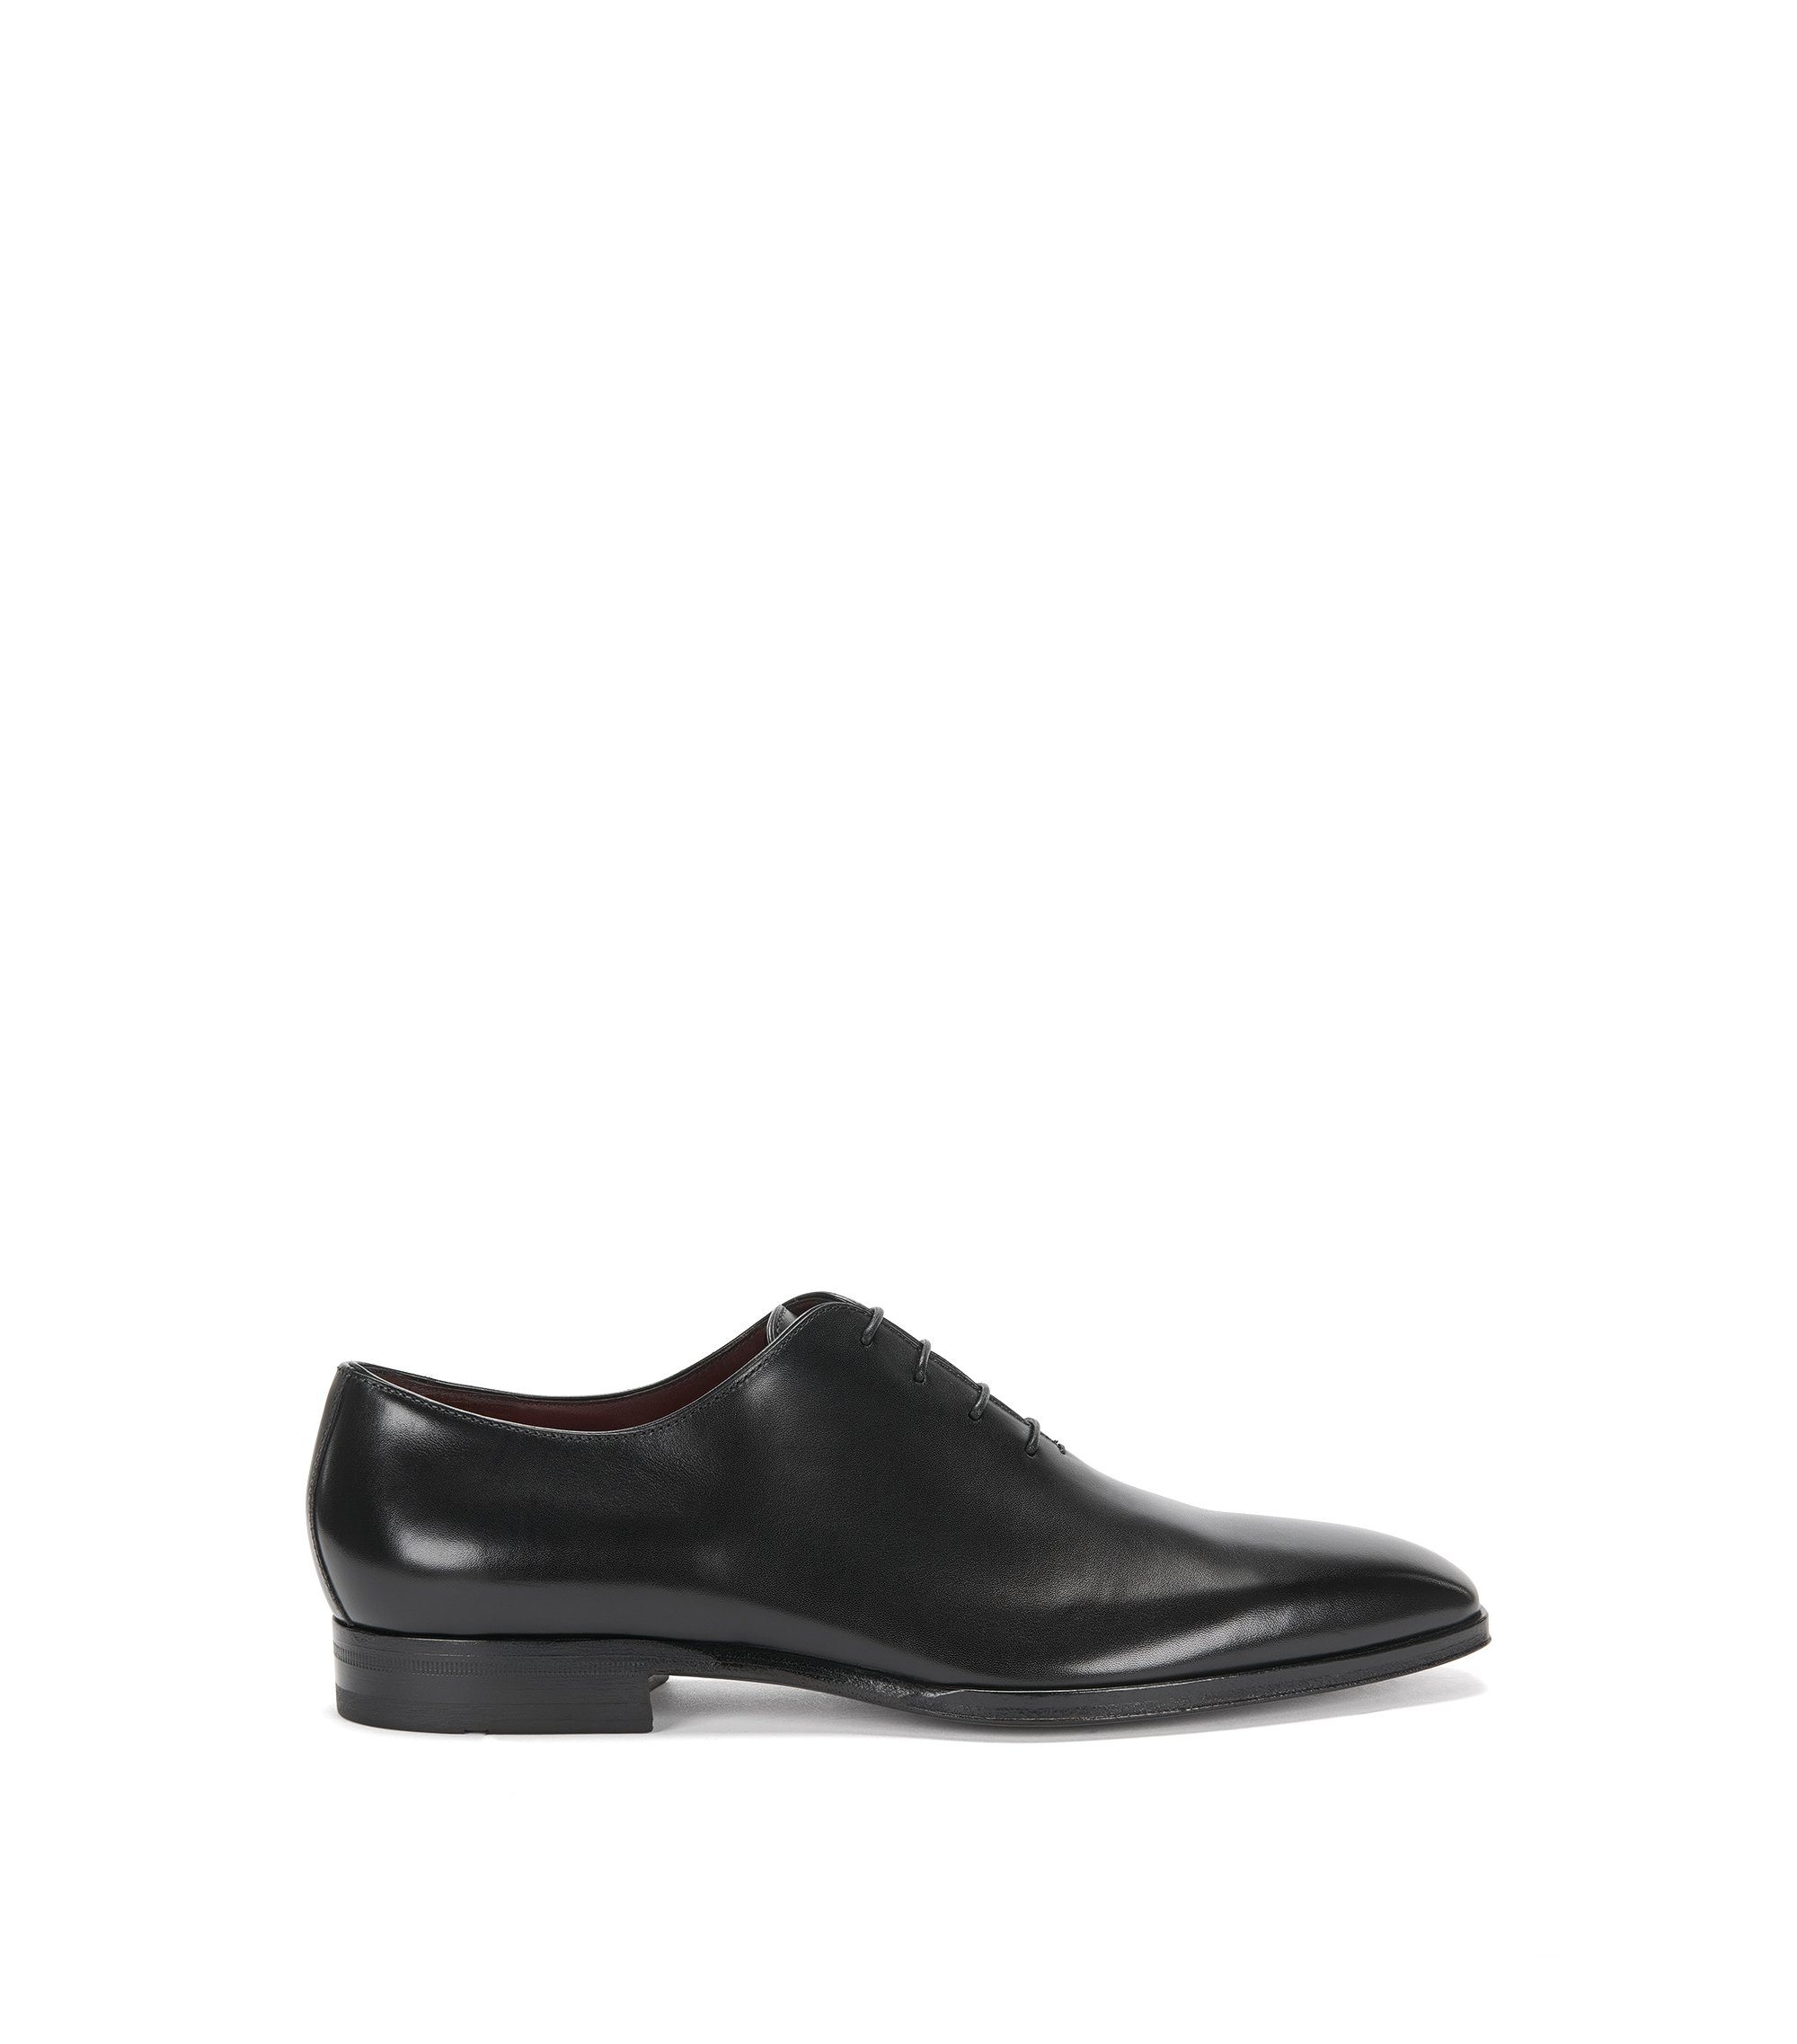 BOSS Tailored Oxford shoes in burnished leather, Black